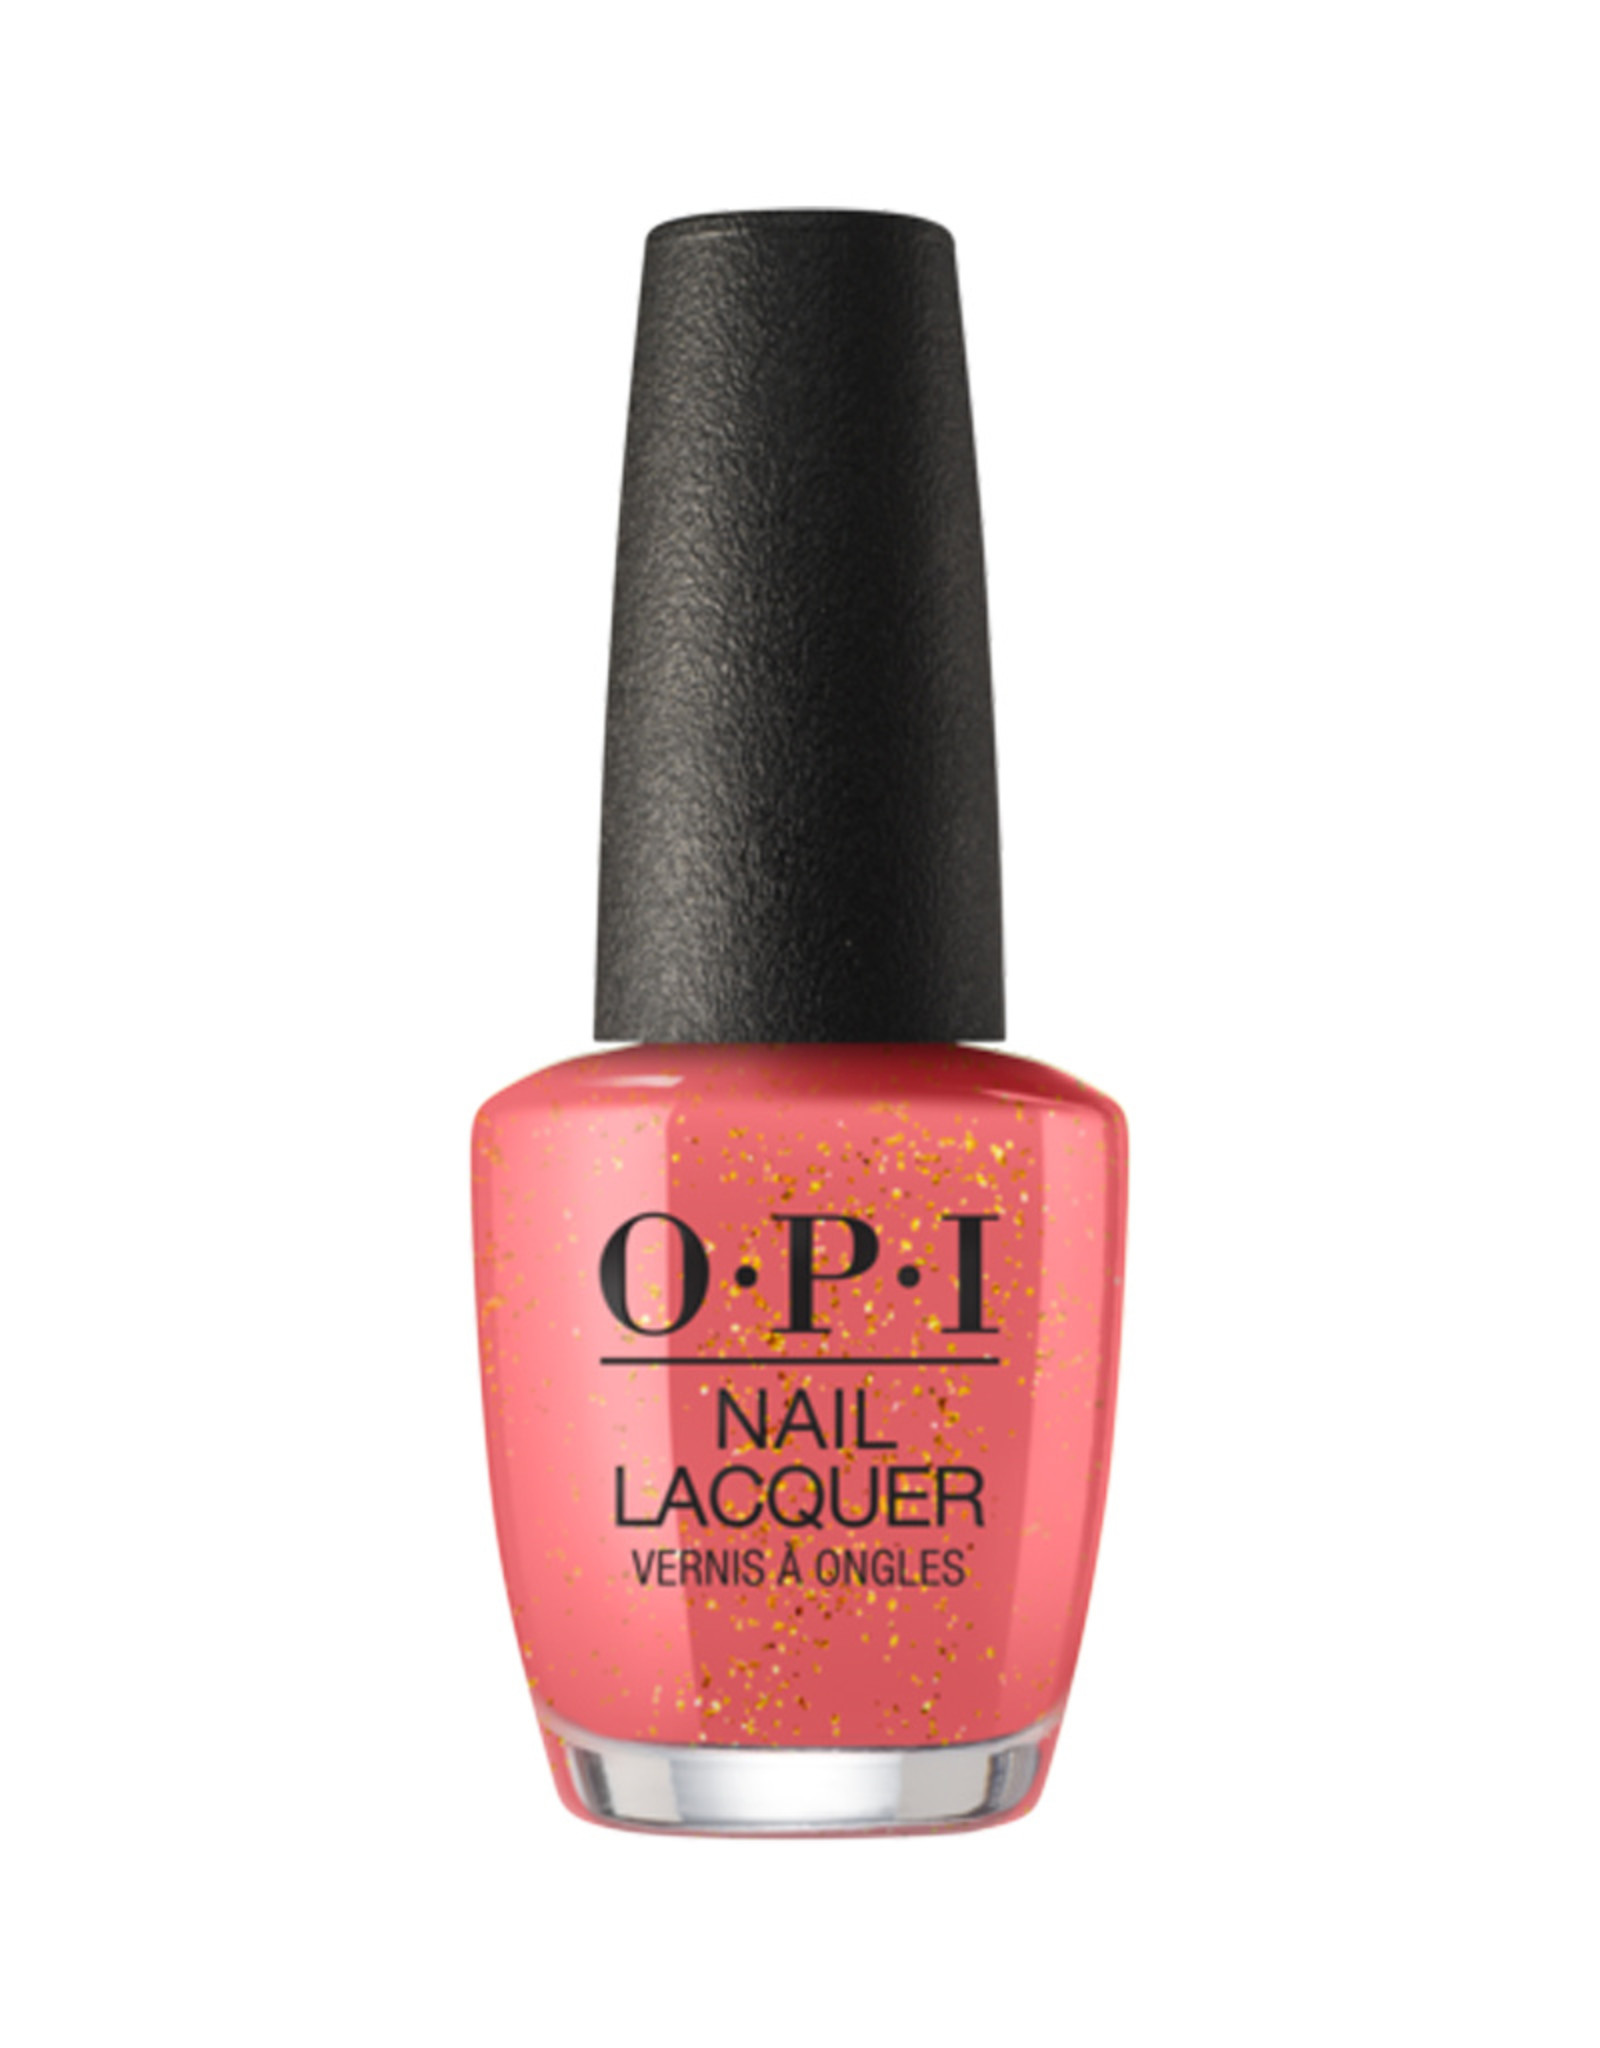 OPI NAIL LACQUER MURAL MURAL ON THE WALL